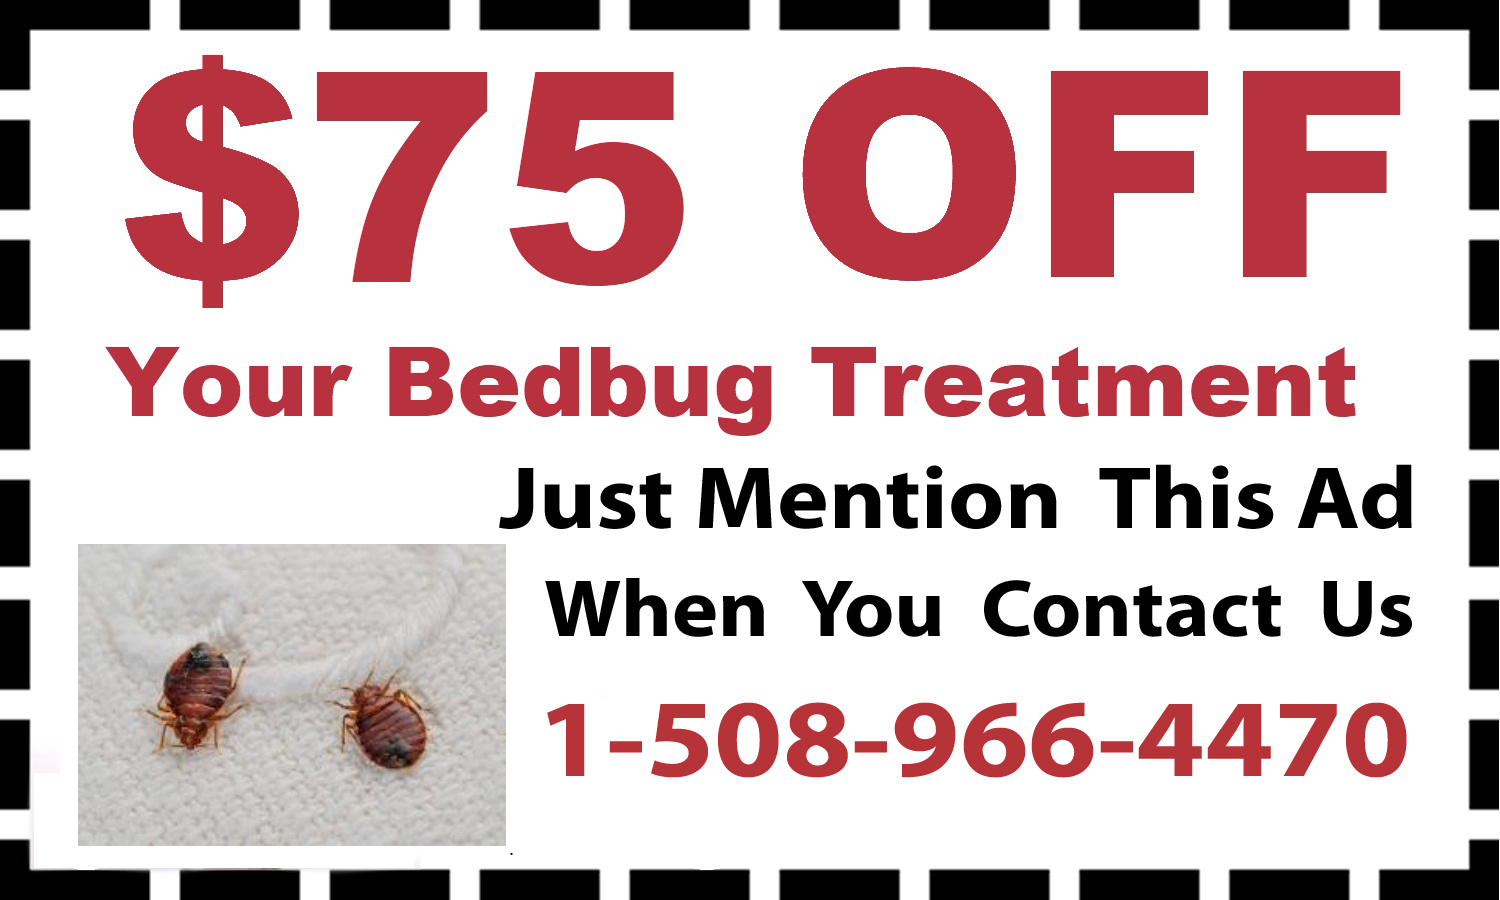 BedBug Treatment Wellesley, MA